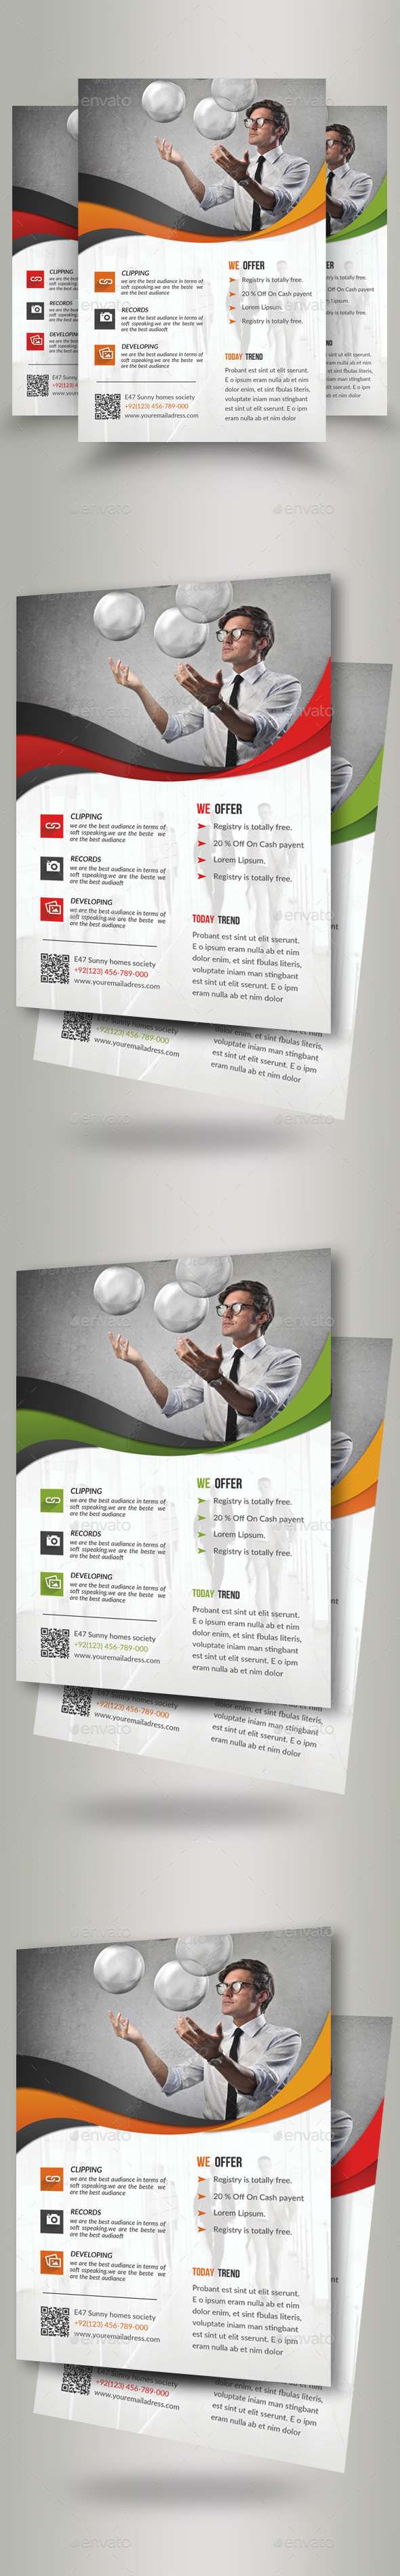 Creative Business Flyers - Corporate Flyers